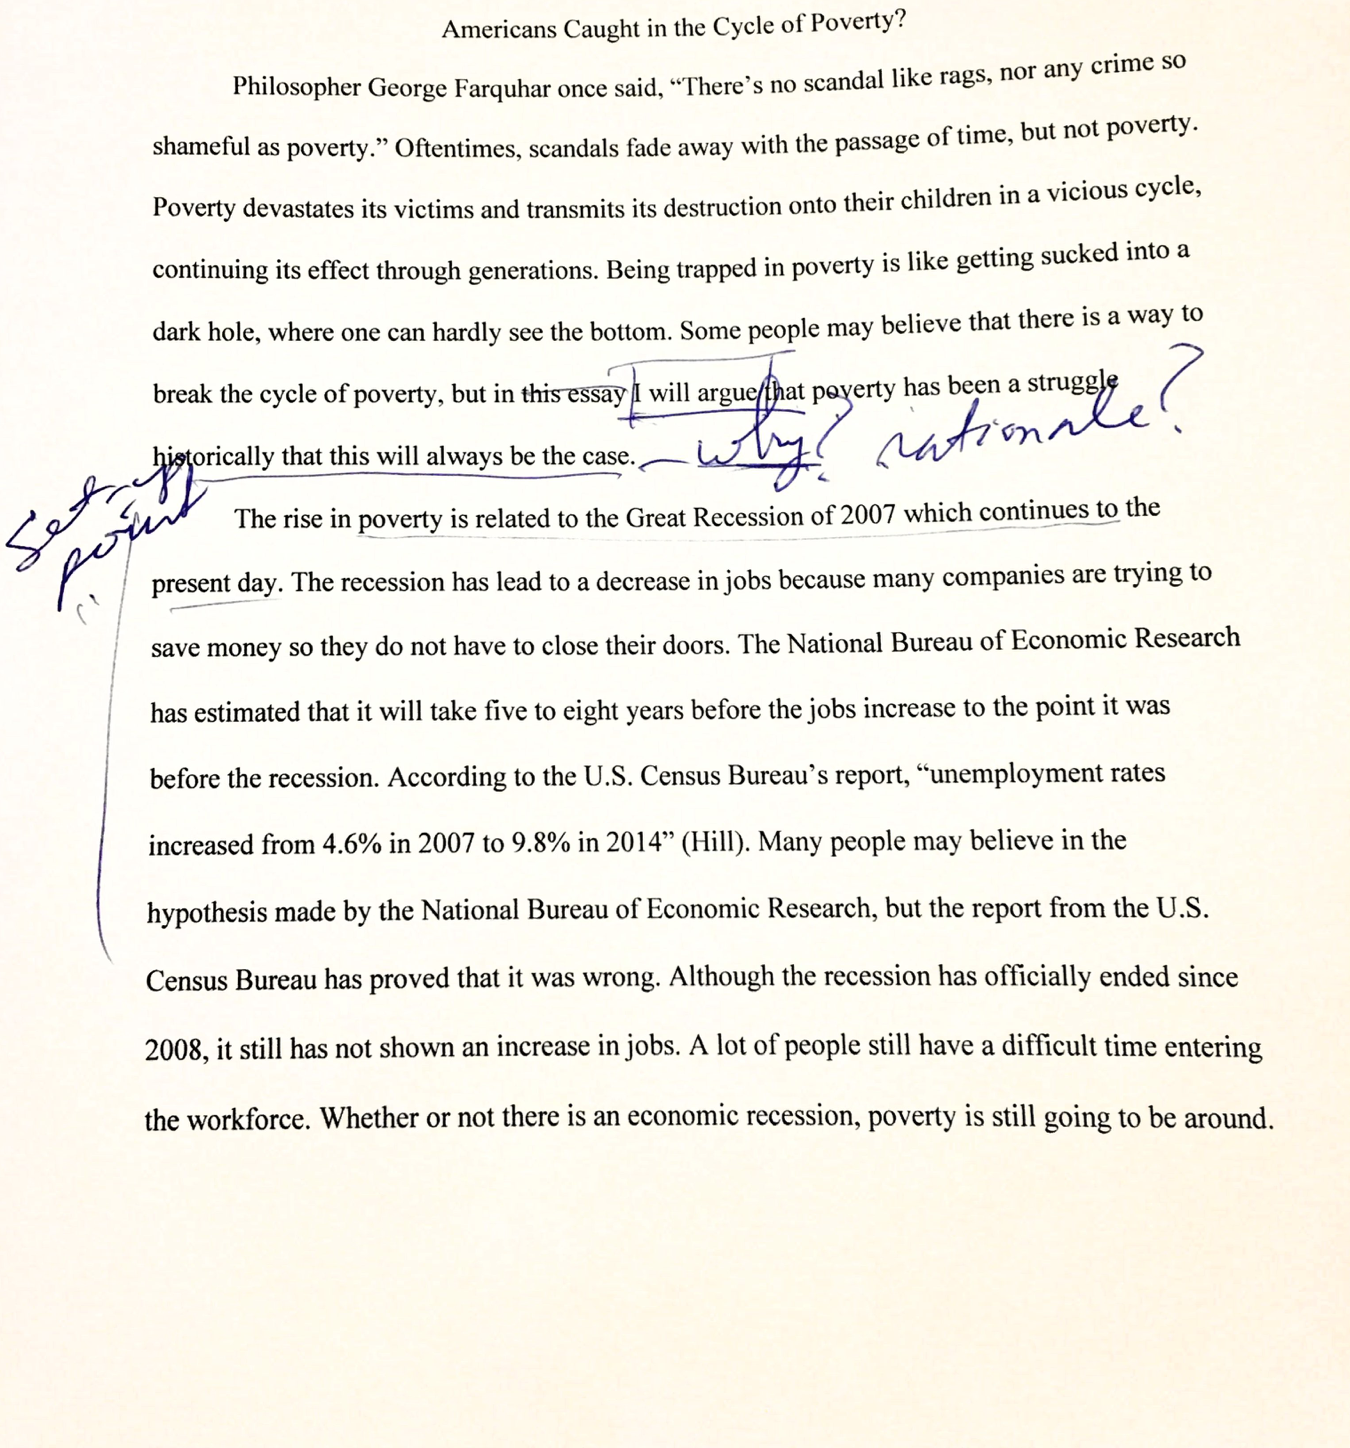 003 What Is Paraphrase In An Essay Magnificent A Full